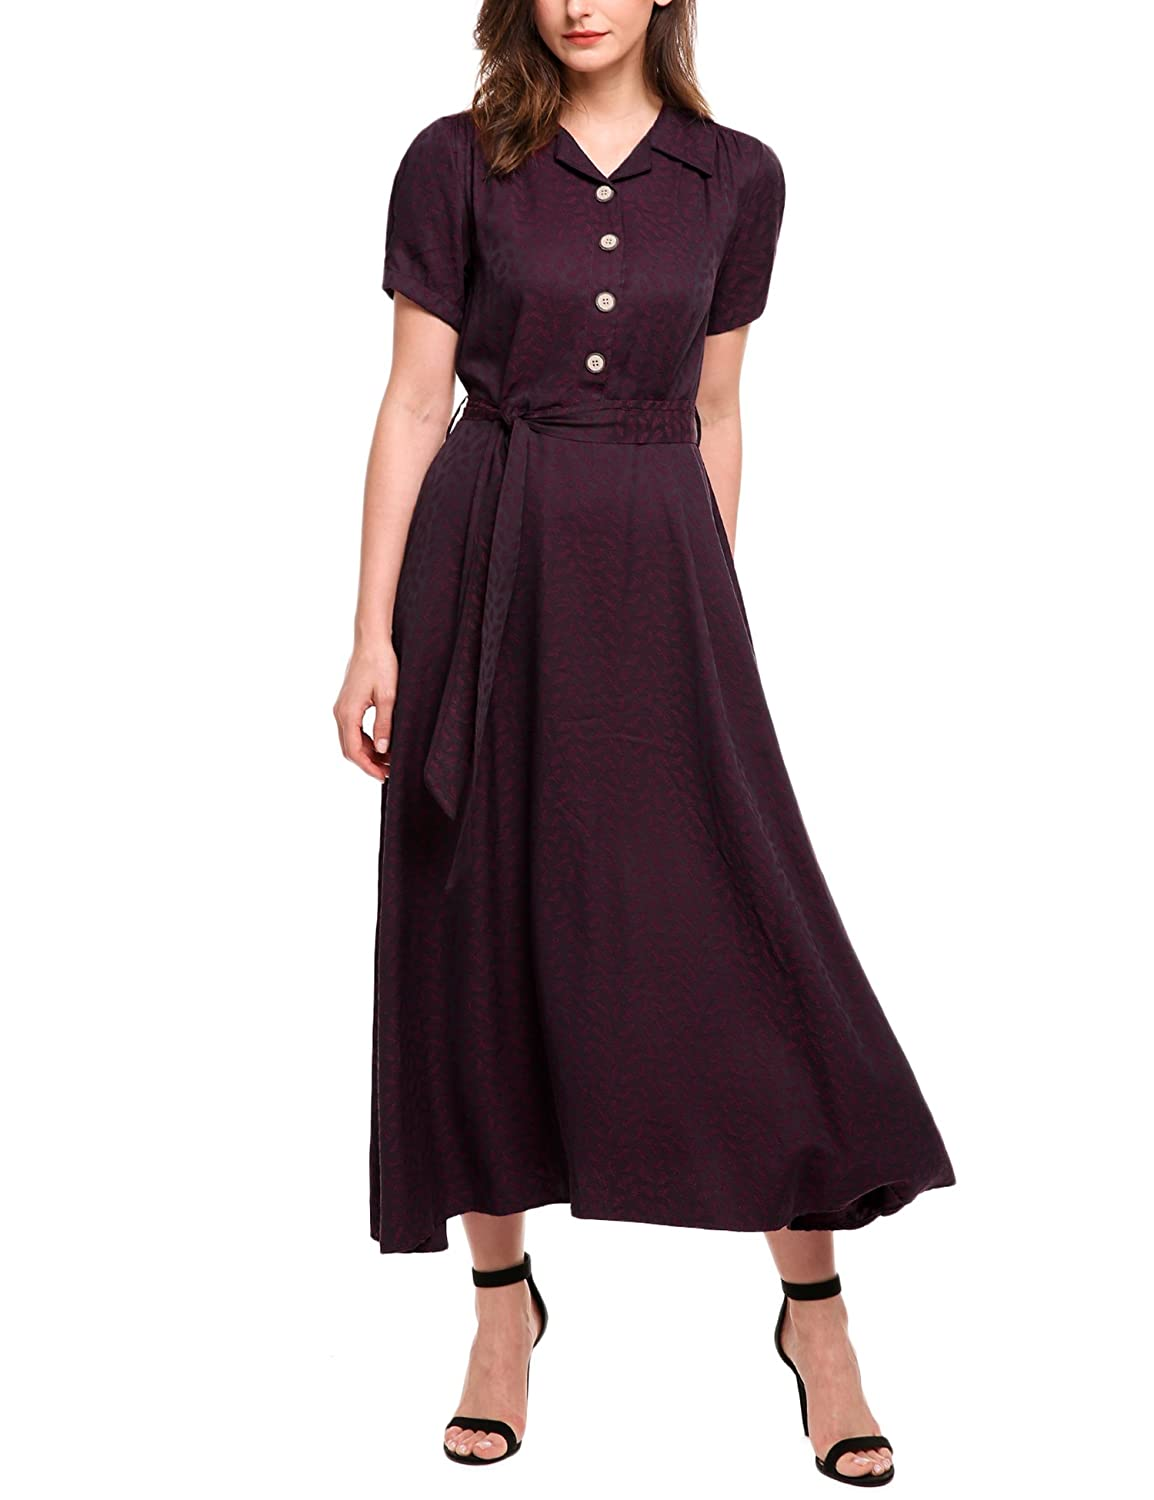 1940s Fashion Advice for Short Women ACEVOG Women Vintage Style Turn Down Collar Short Sleeve High Waist Maxi Swing Dress with Belt $38.99 AT vintagedancer.com